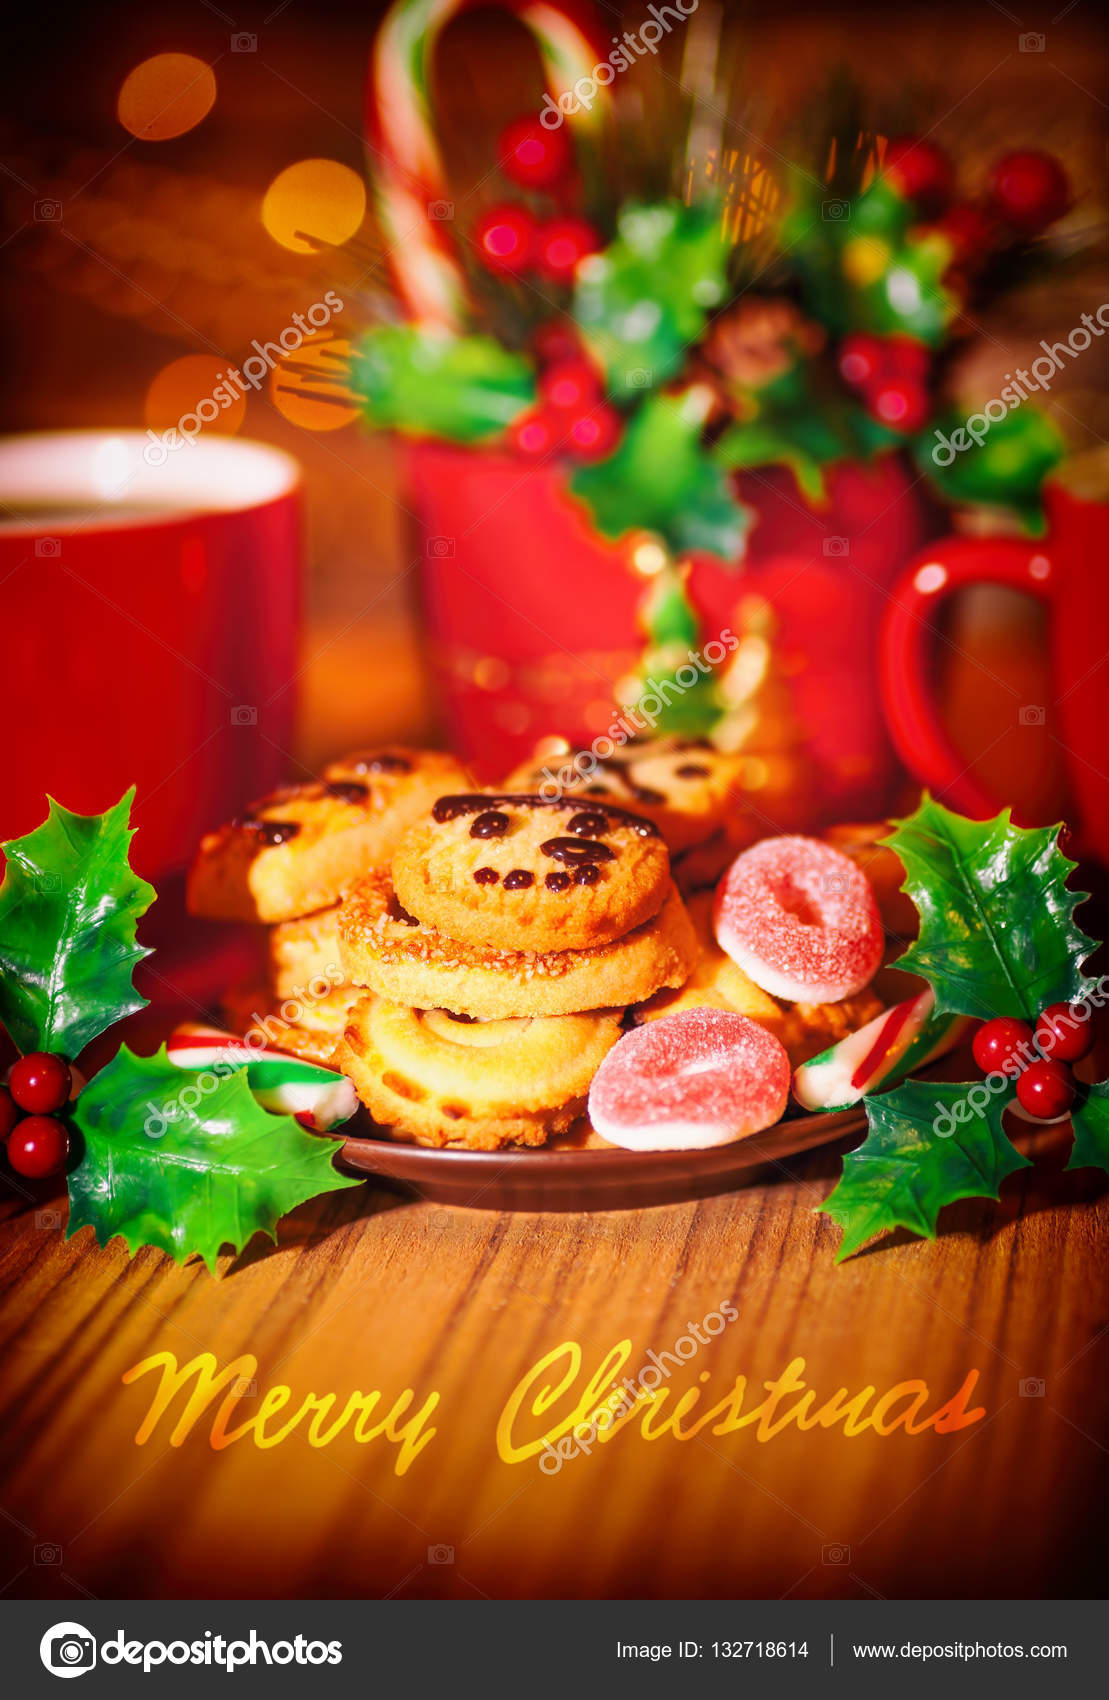 Merry christmas greeting card stock photo annaom 132718614 merry christmas greeting card beautiful cozy festive sweets still life tasty homemade cookies with two cups of hot chocolate on the wooden table m4hsunfo